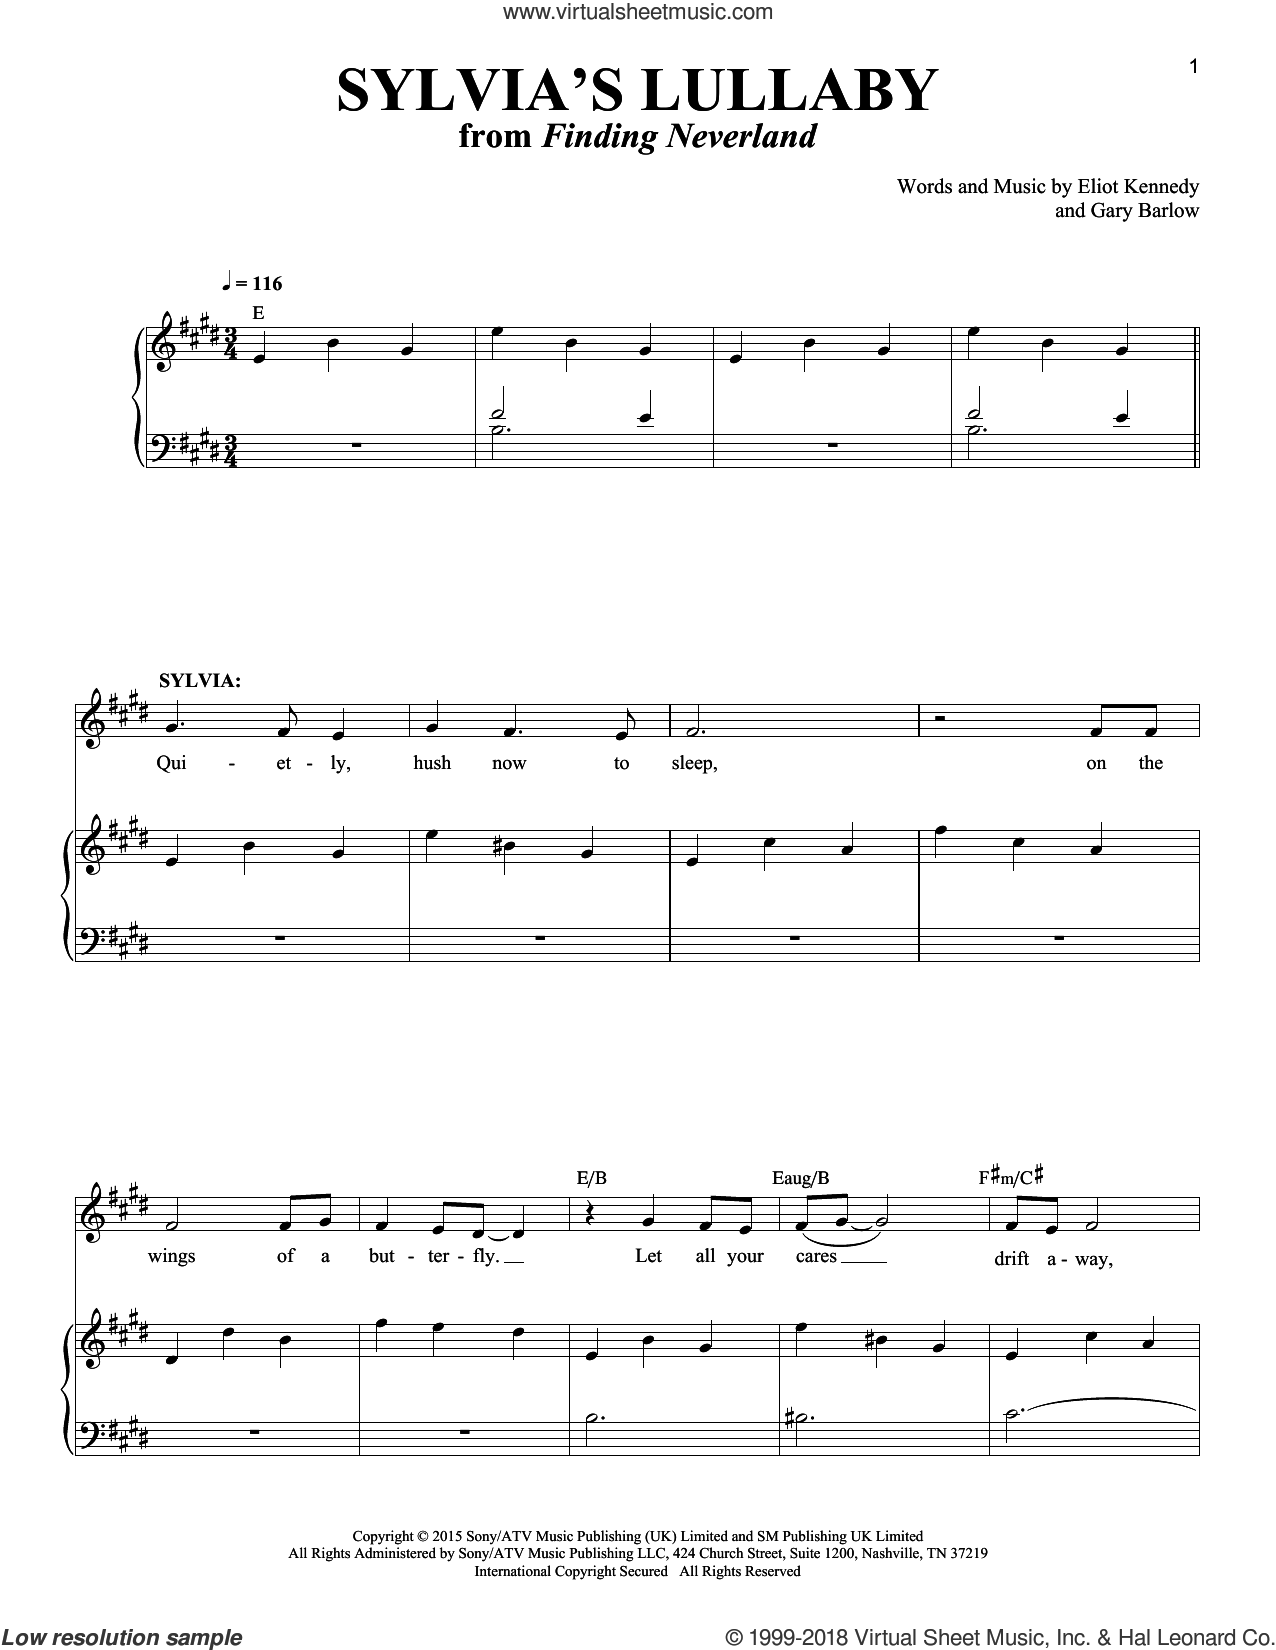 Sylvia's Lullaby sheet music for voice and piano by Gary Barlow & Eliot Kennedy, Eliot Kennedy and Gary Barlow, intermediate